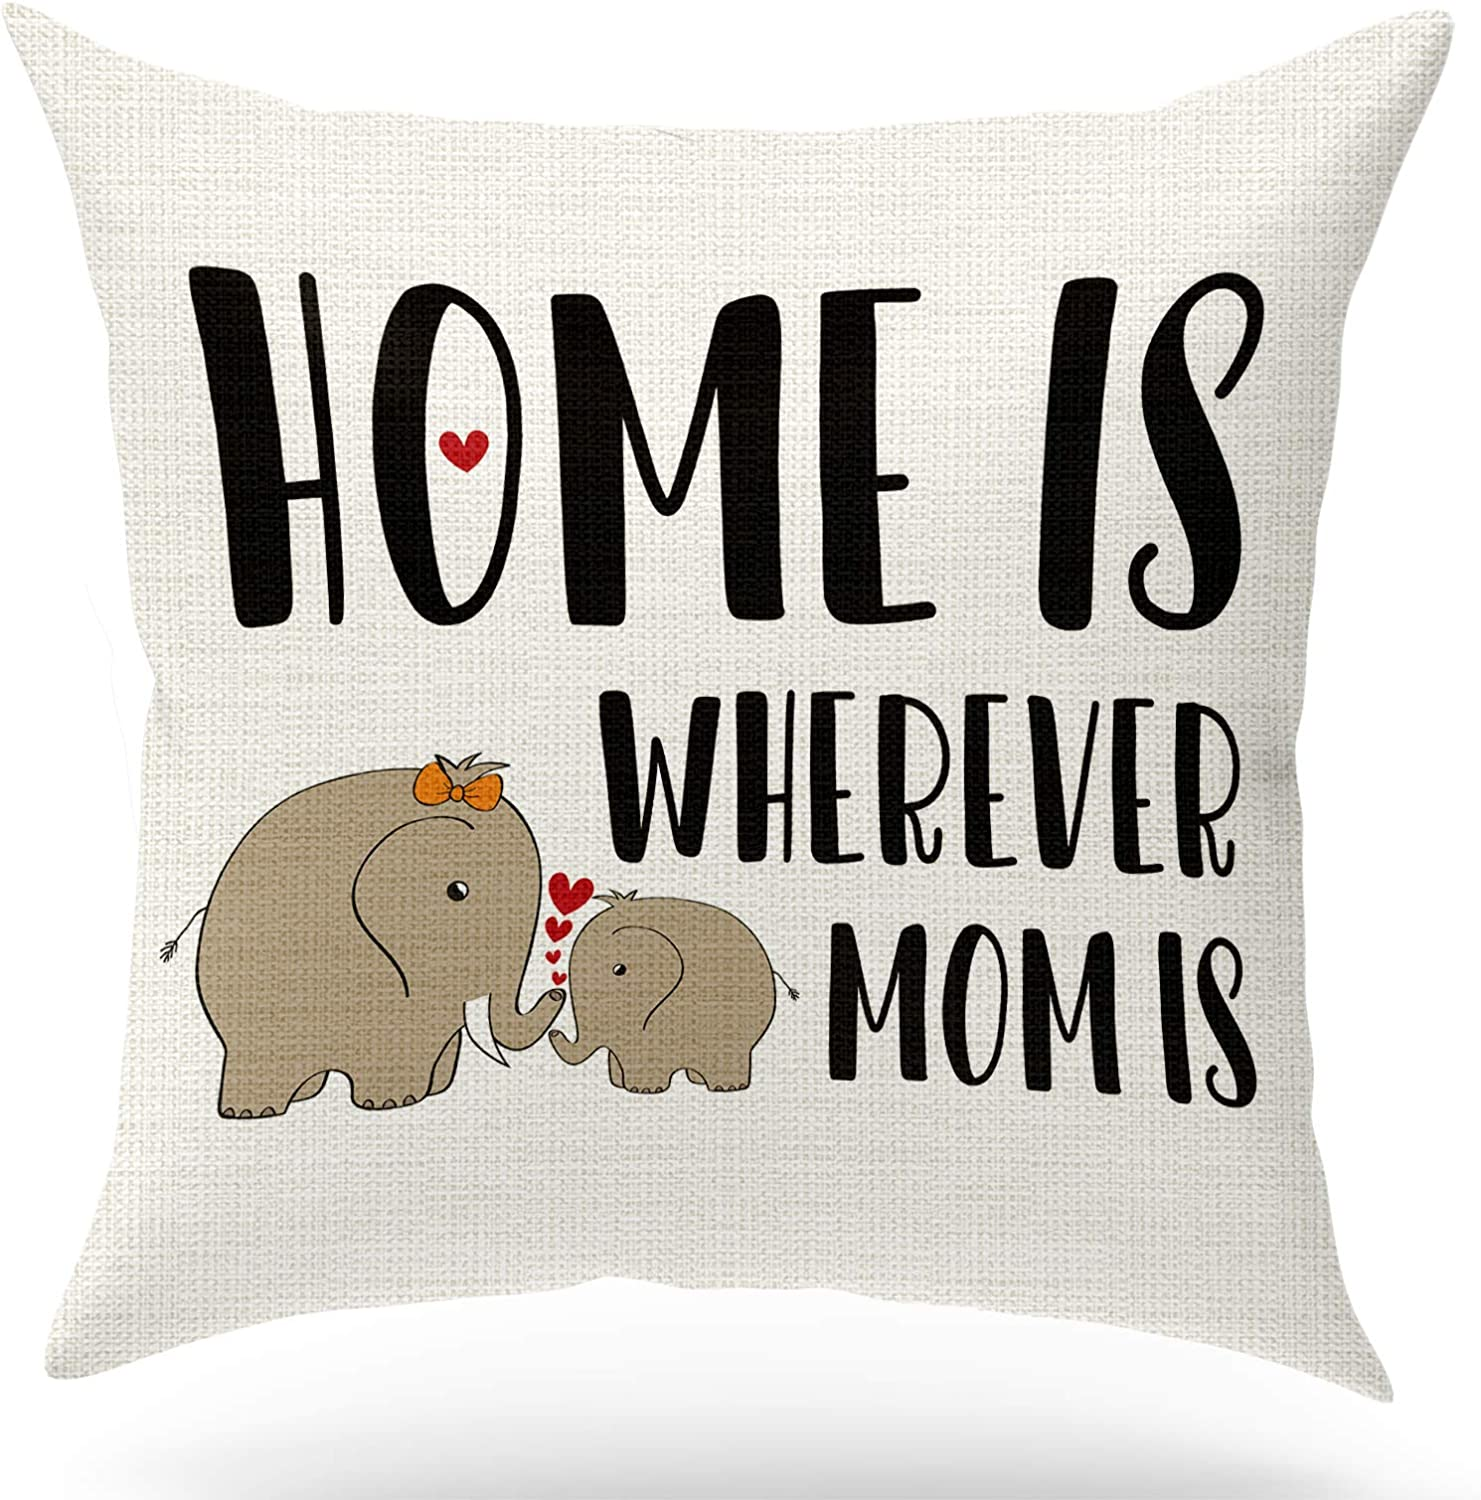 KongMoTree Mom Birthday Gifts,Mom Gifts,Home is Wherever is Mom is,Decorative Cotton Linen Pillow Case for Sofa Bedroom,Home Decor Farmhouse Throw Pillow Cover 18x18 inch